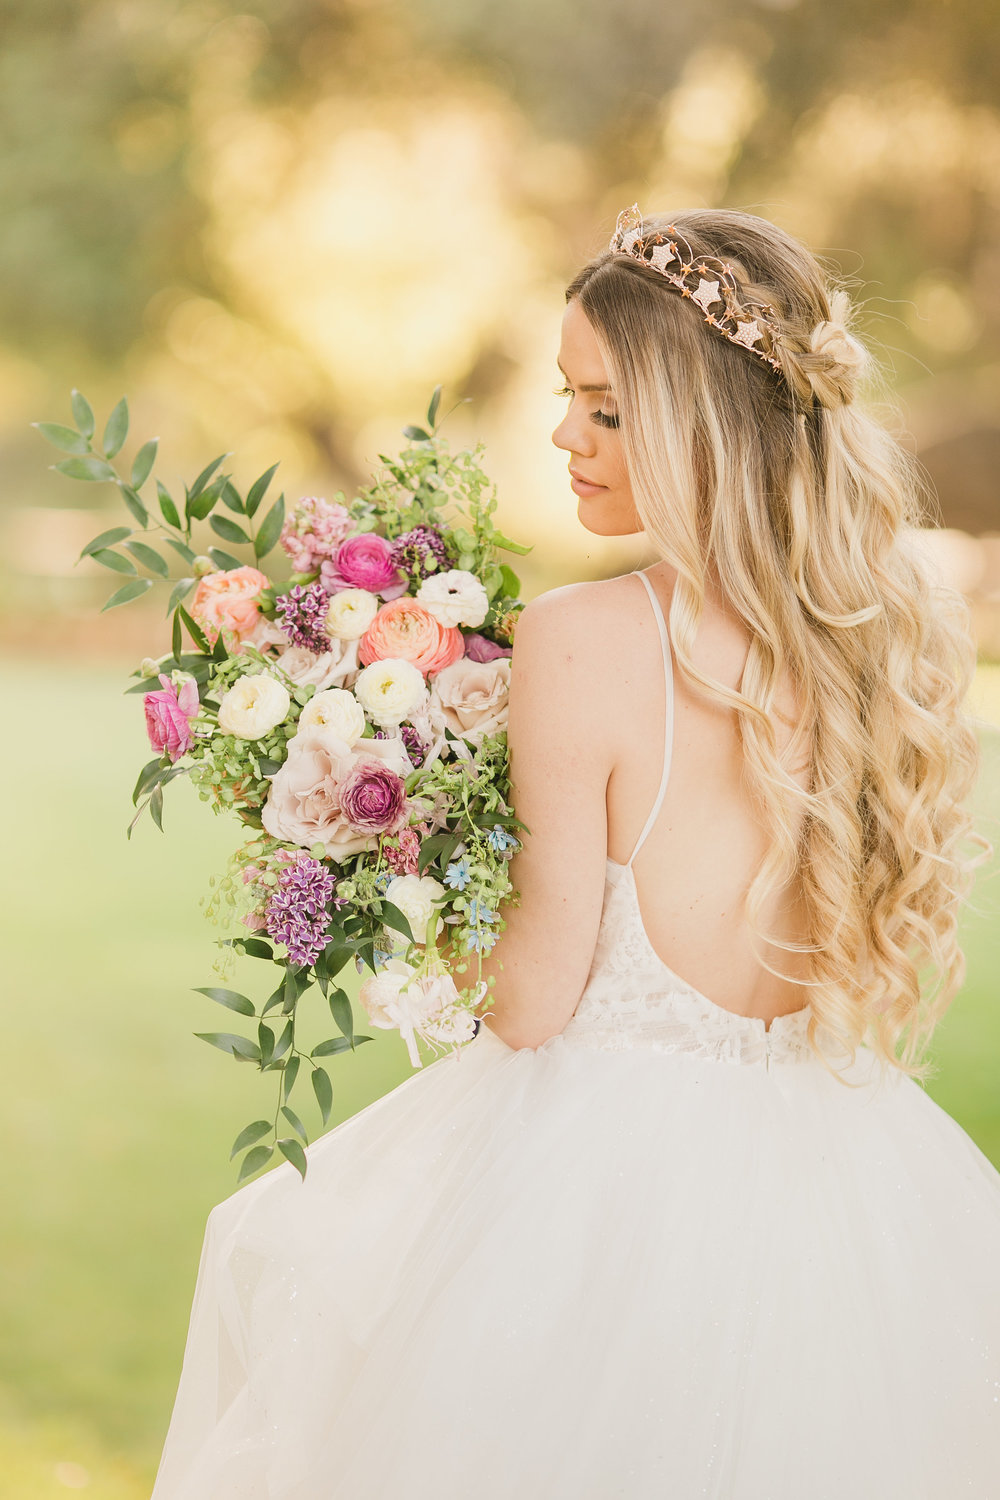 Rose-Gold-Star-Bridal-Crown-Bridal-Hairstyle-Rose-Gold-Unicorn-Styled-Shoot-with-Pastel-Colors-and-Magical-Details